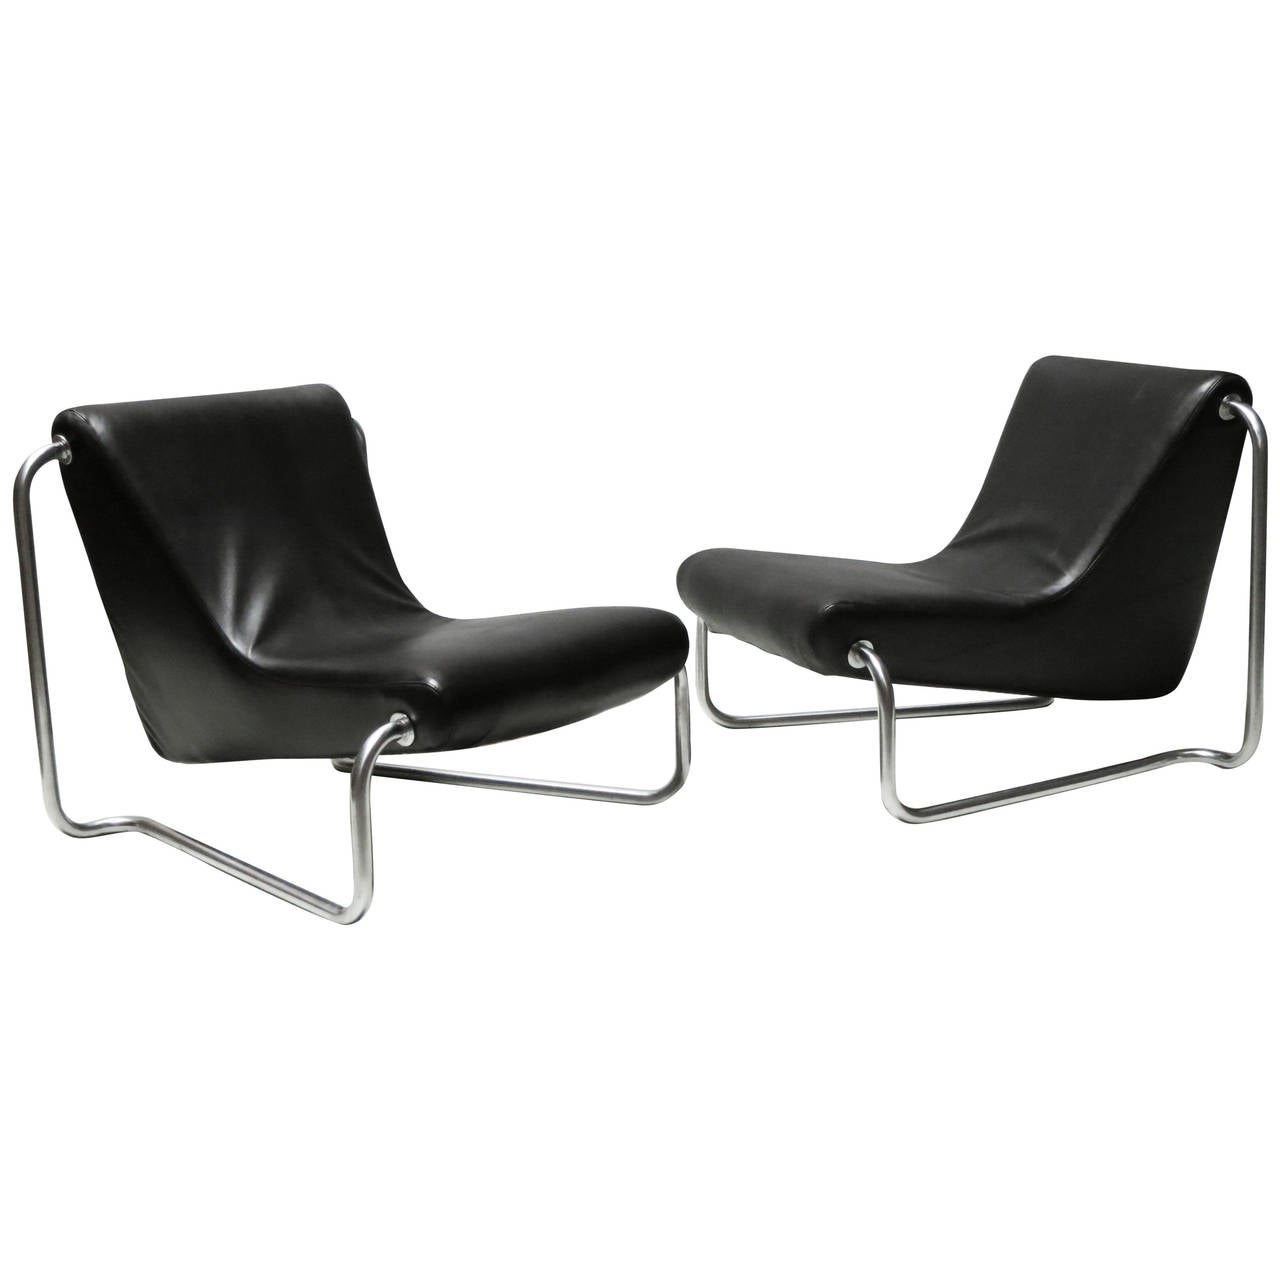 steel lounge chair stainless hsn code pair of leather and 1970s chairs by luigi